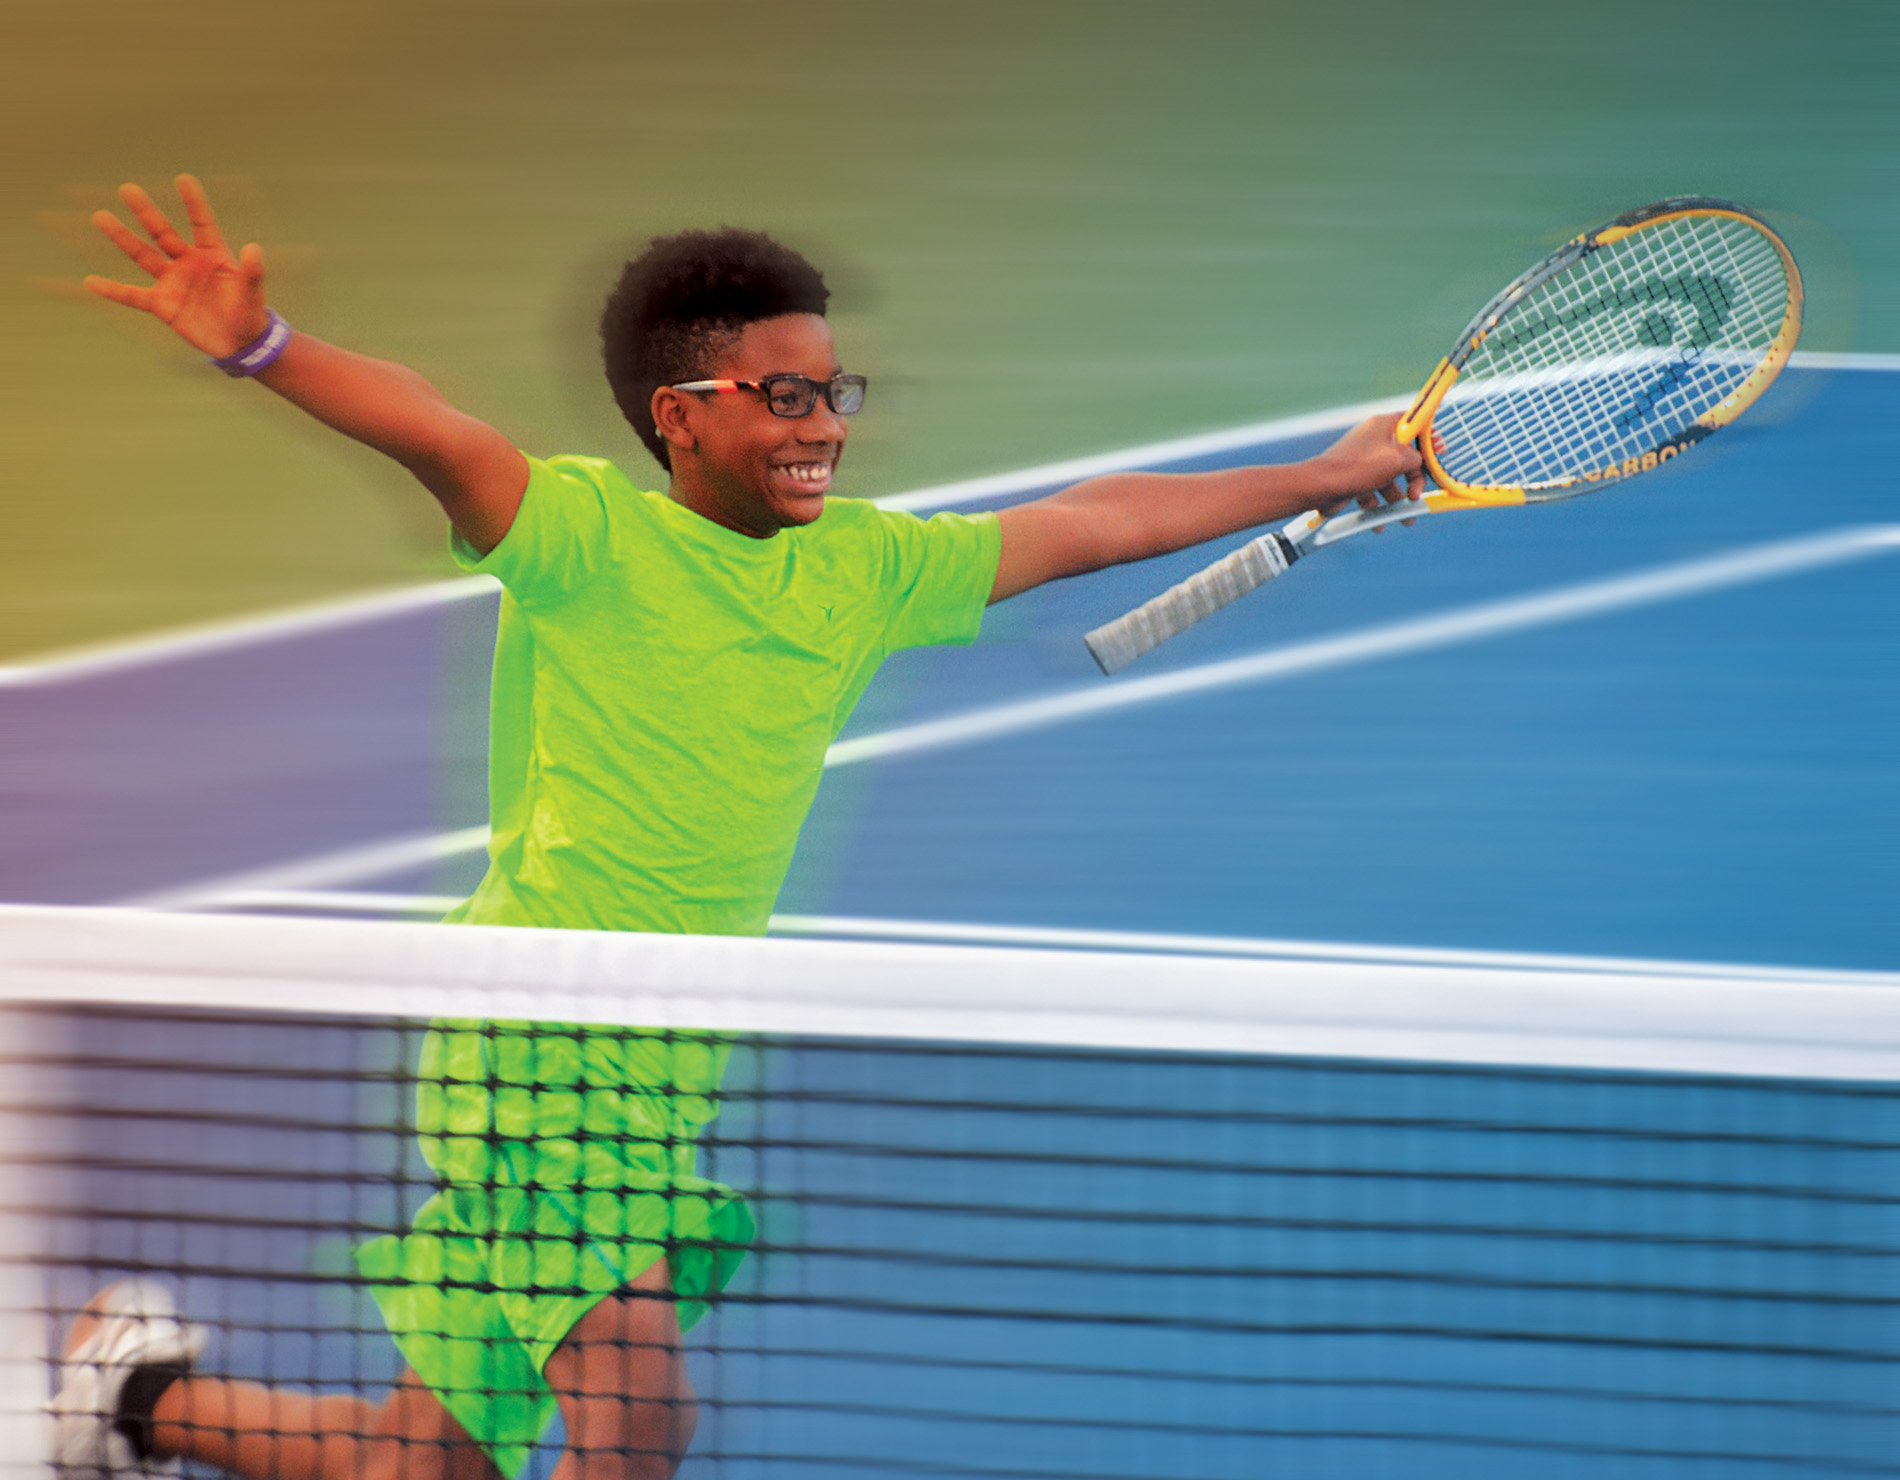 reaching out to community youth through tennis